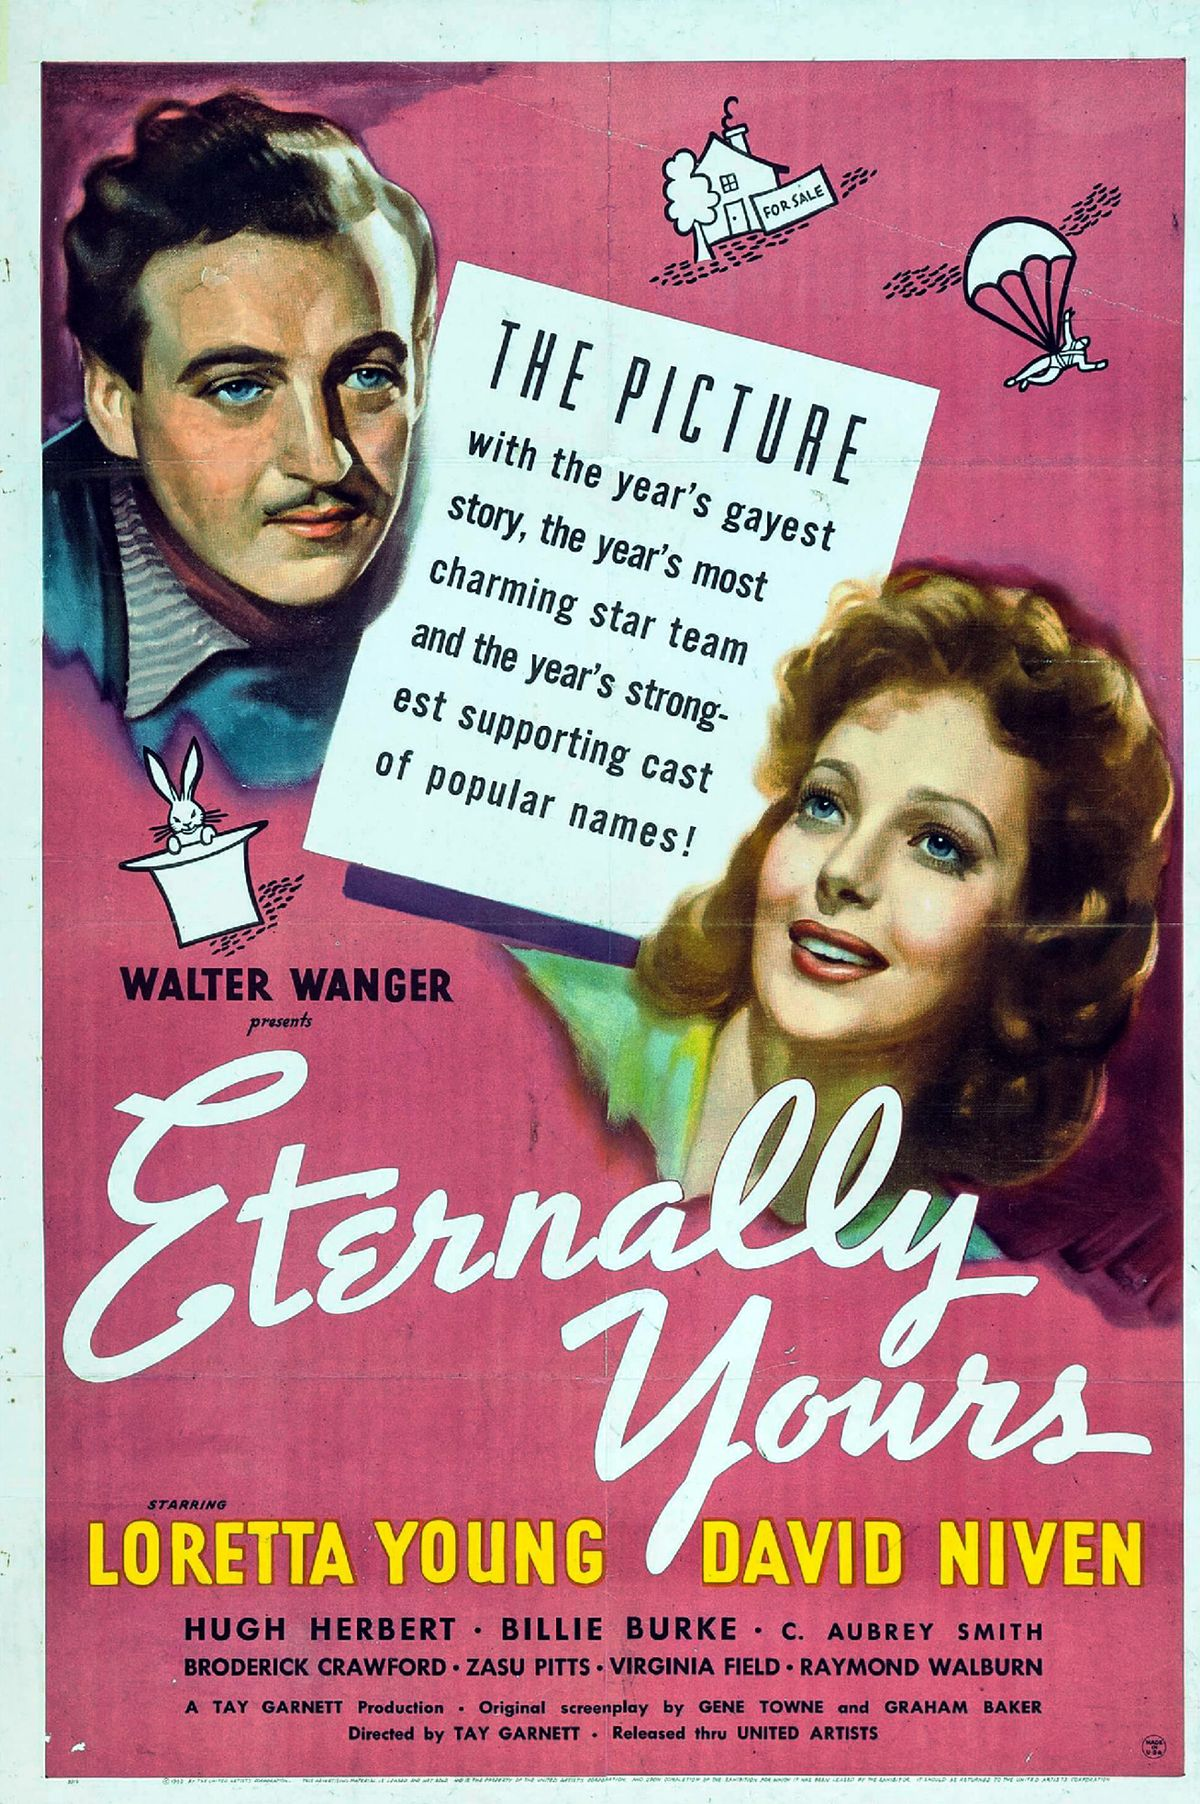 Eternally Yours (film) - Wikipedia